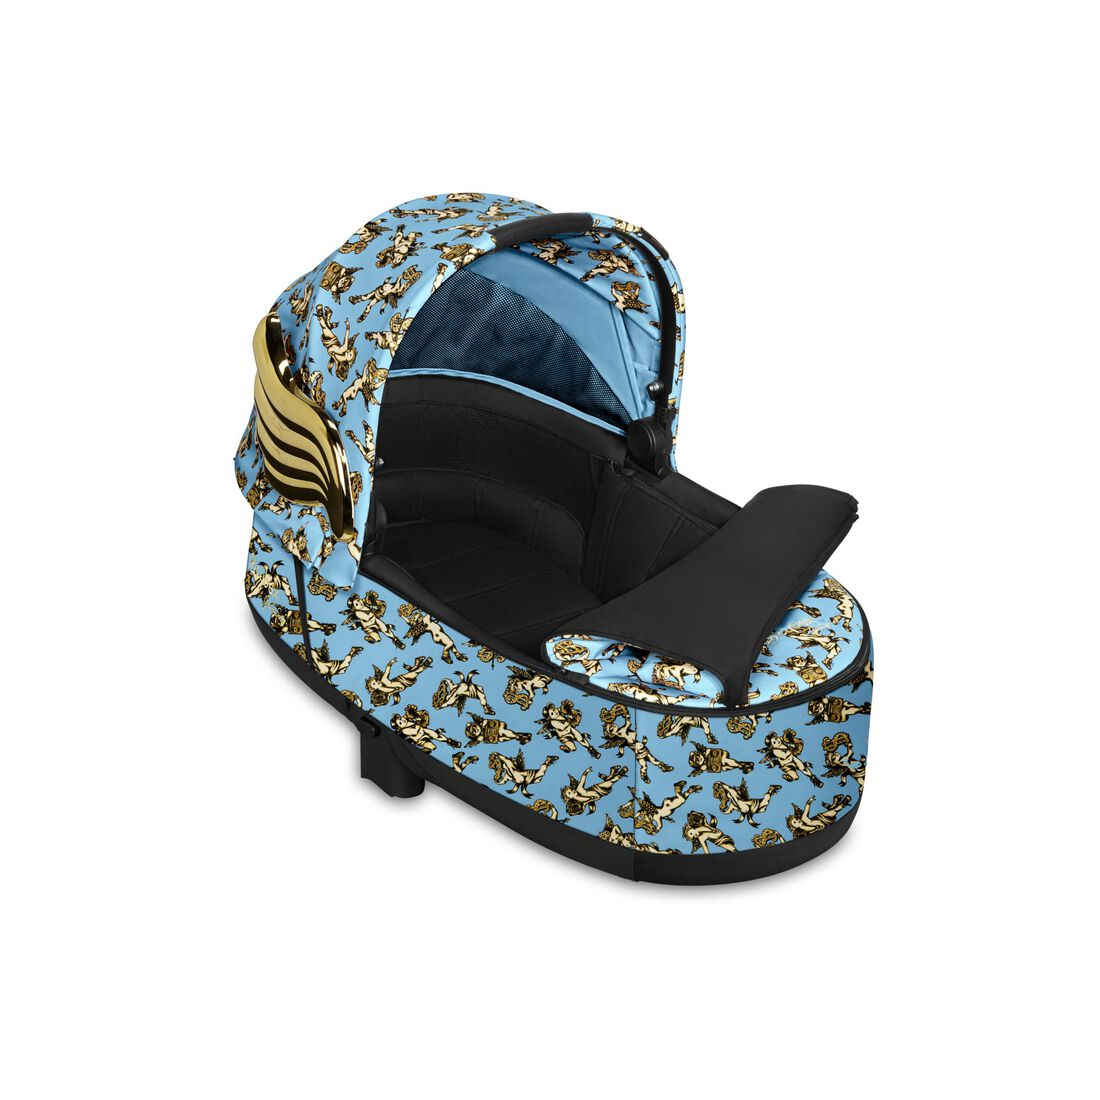 CYBEX Priam Lux Carry Cot - Cherubs Blue in Cherubs Blue large Bild 2